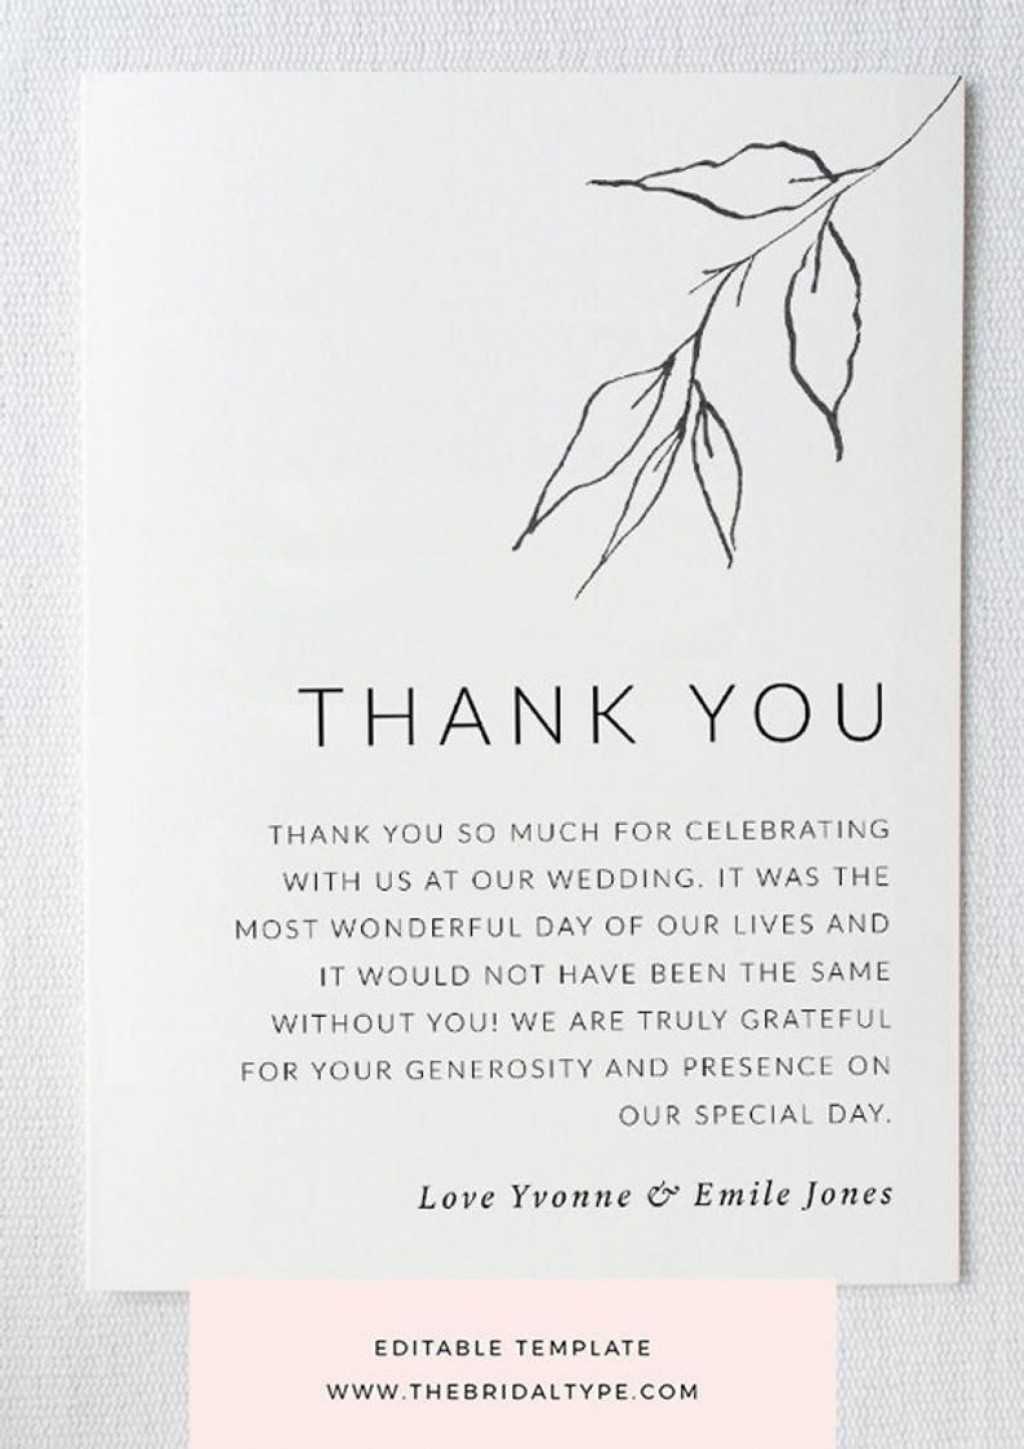 000 Frightening Thank You Note Template For Money Highest Quality  Card Wording Wedding Example Donation GraduationLarge